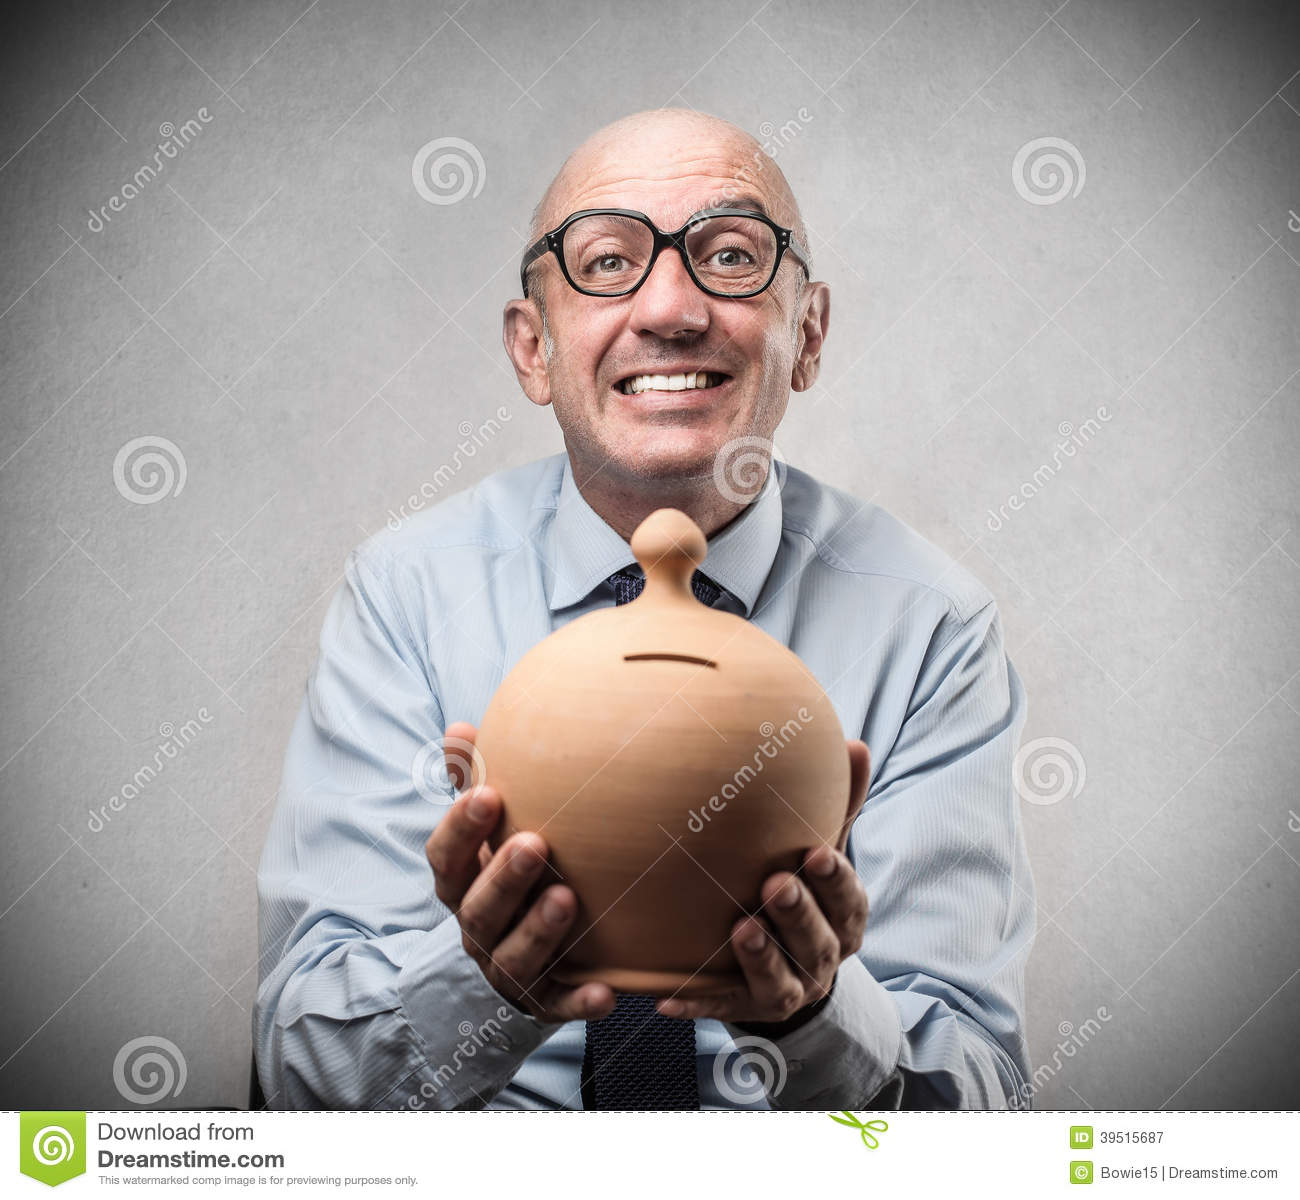 Businessman smiling and holding a piggy-bank